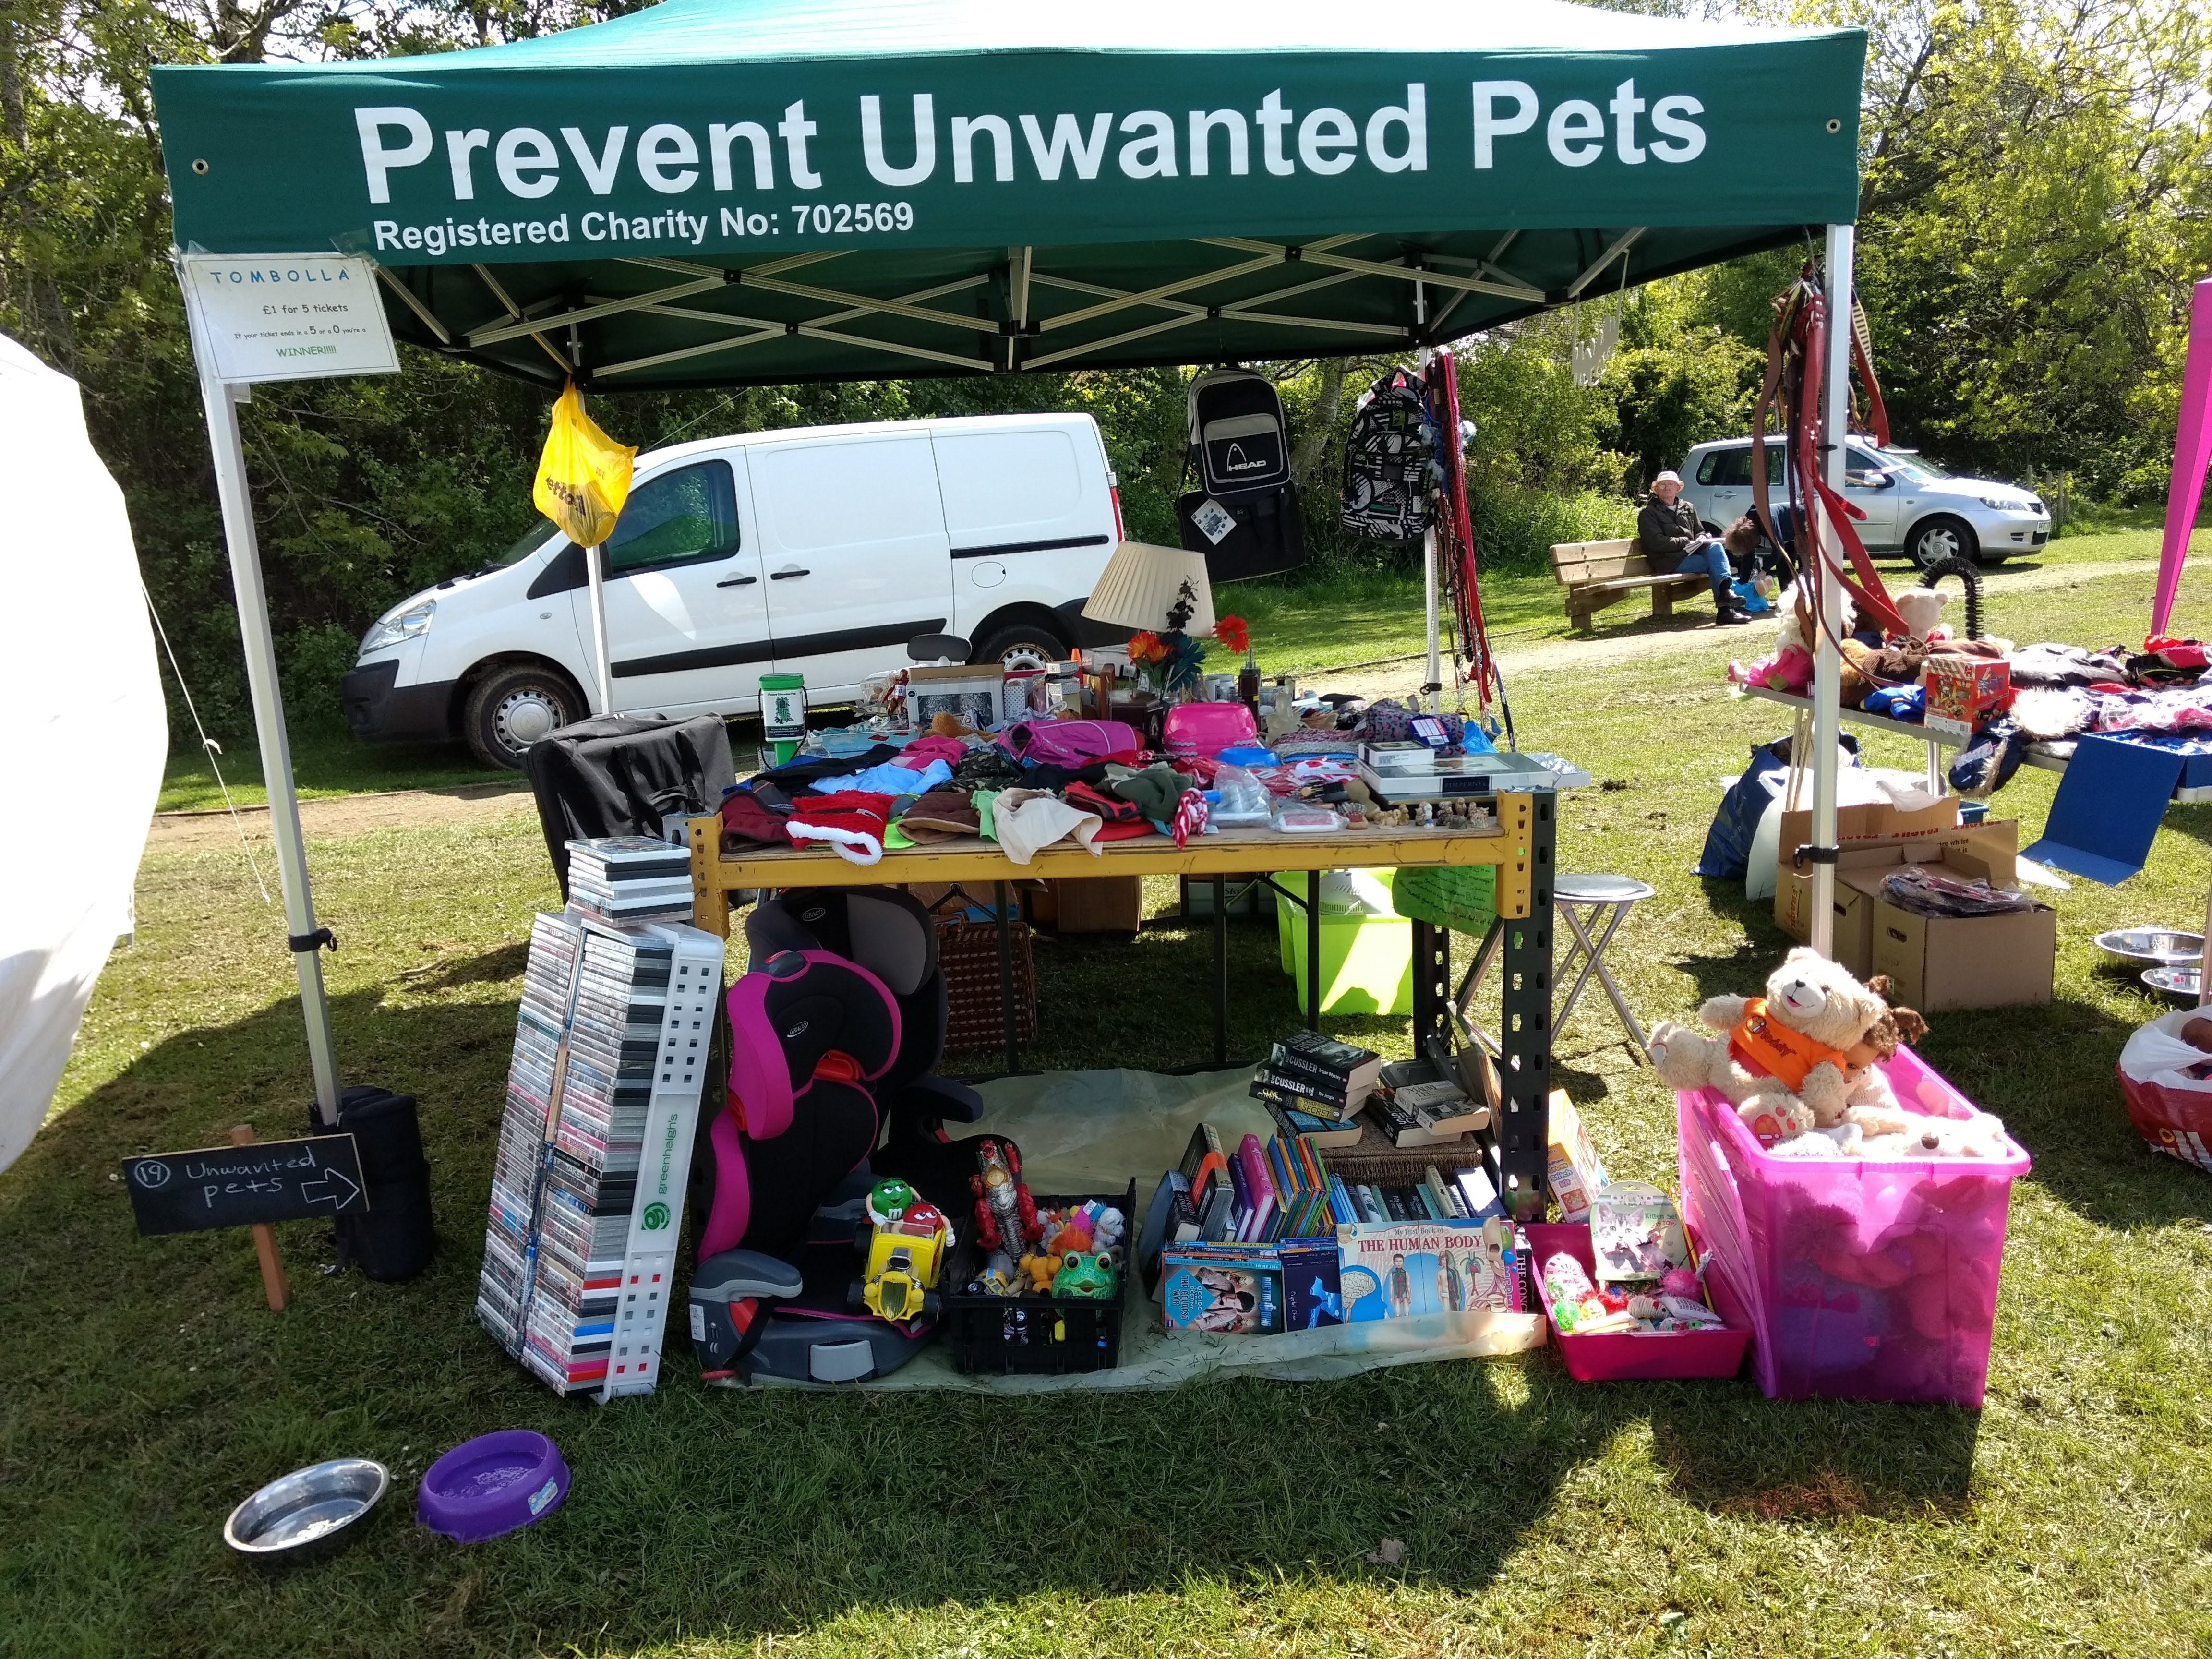 Prevent Unwanted Pets